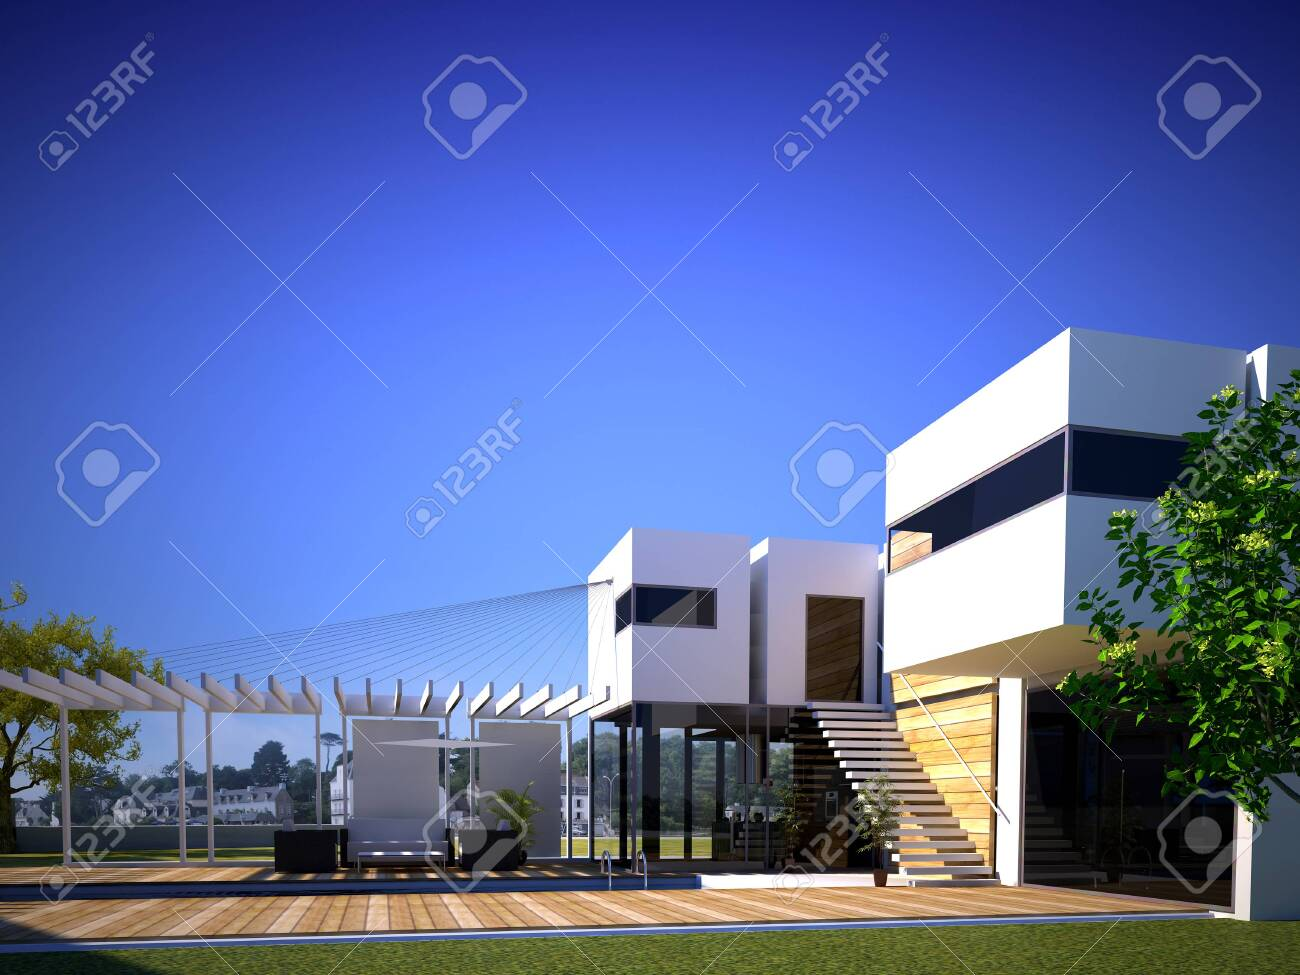 3D rendering of a modern building exterior with pool - 124937564